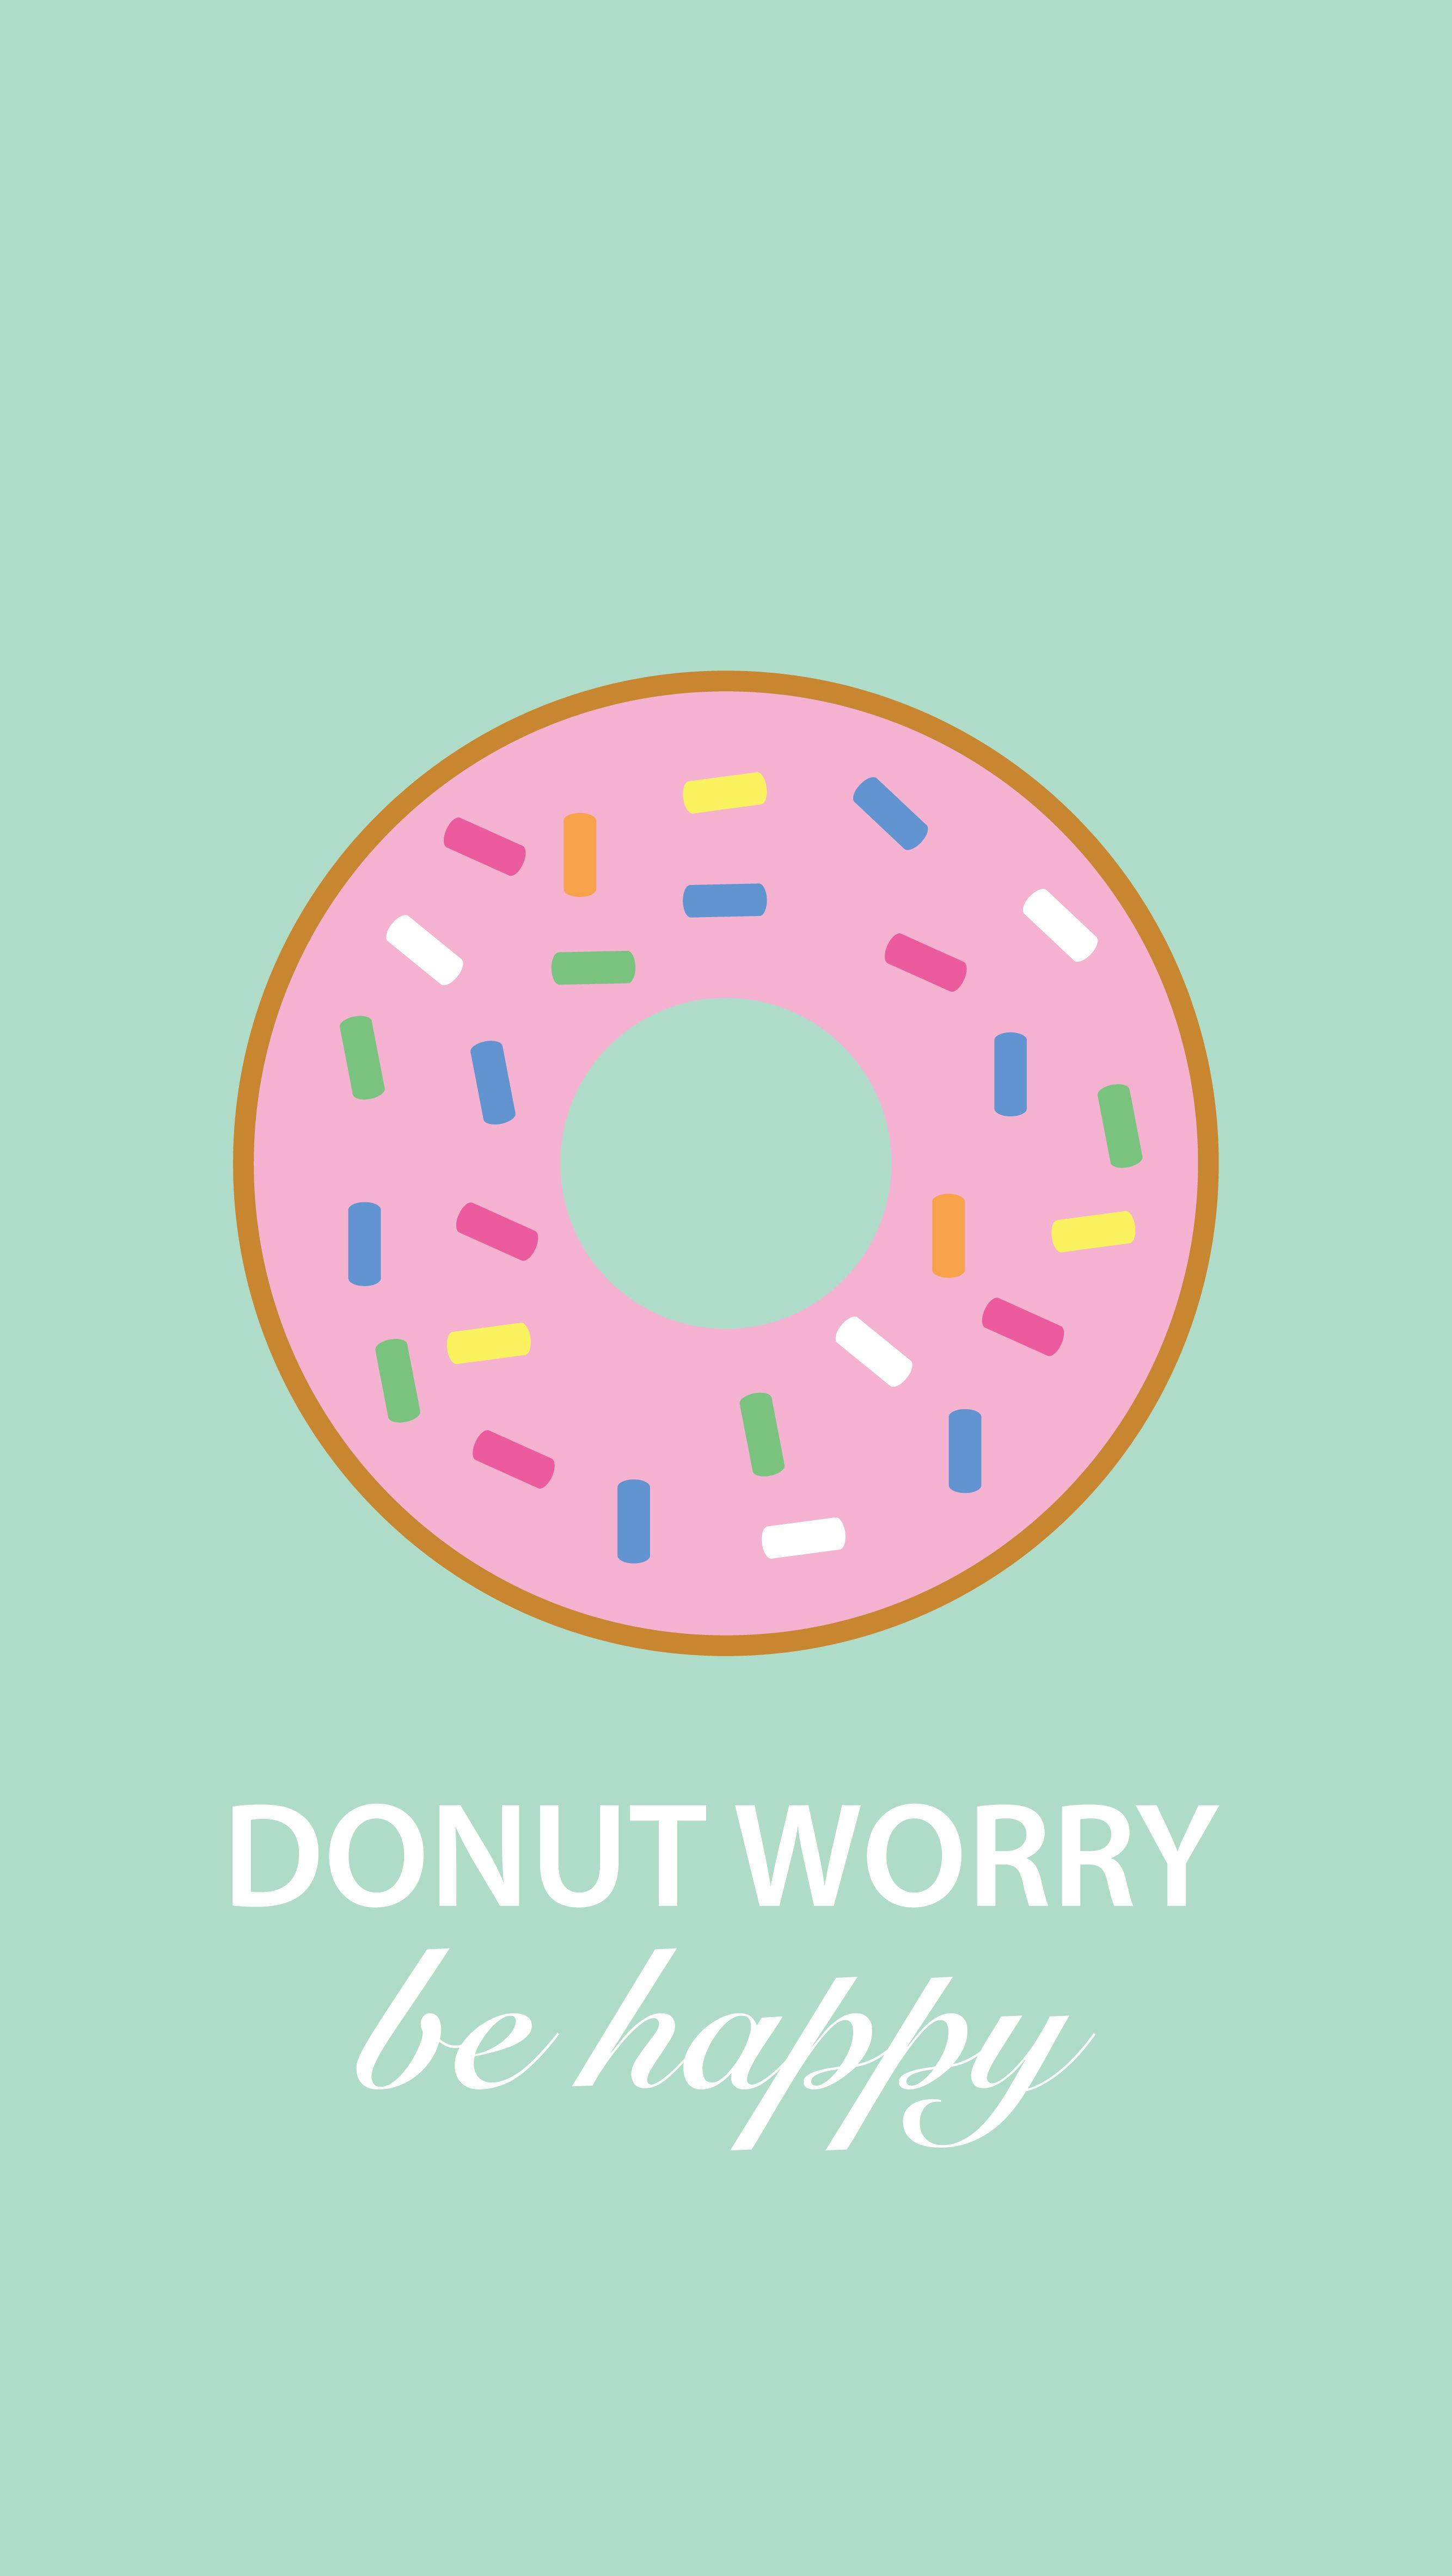 Donut Worry free wallpaper for your iphone laptop & ipad